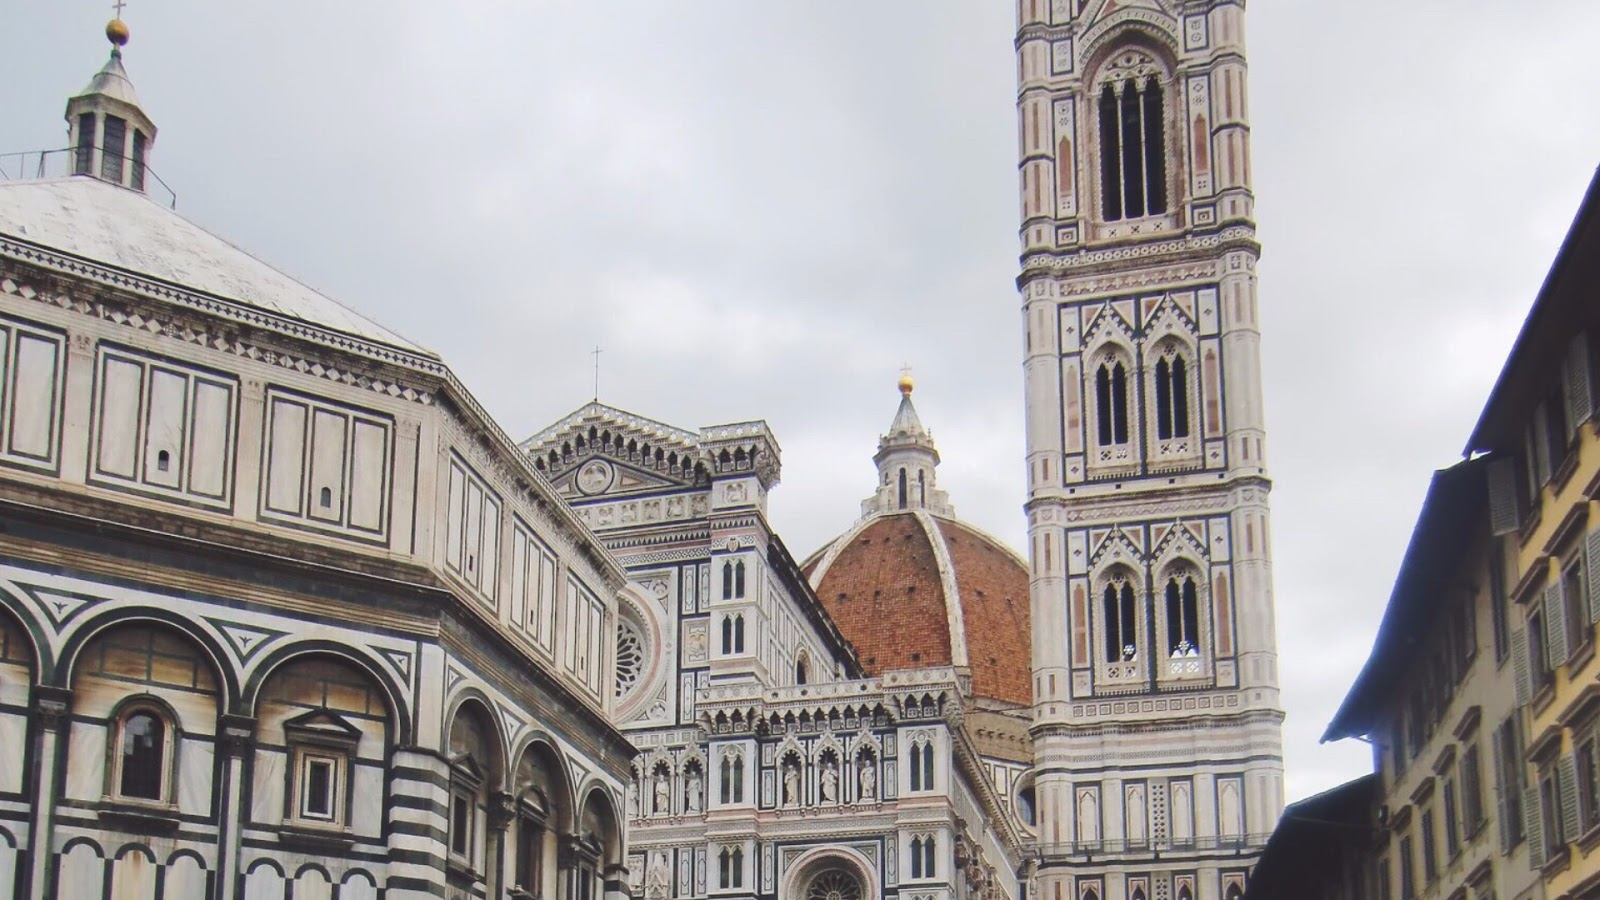 Florence Italy Duomo // February Desktop Wallpaper Download // www.thejoyblog.net